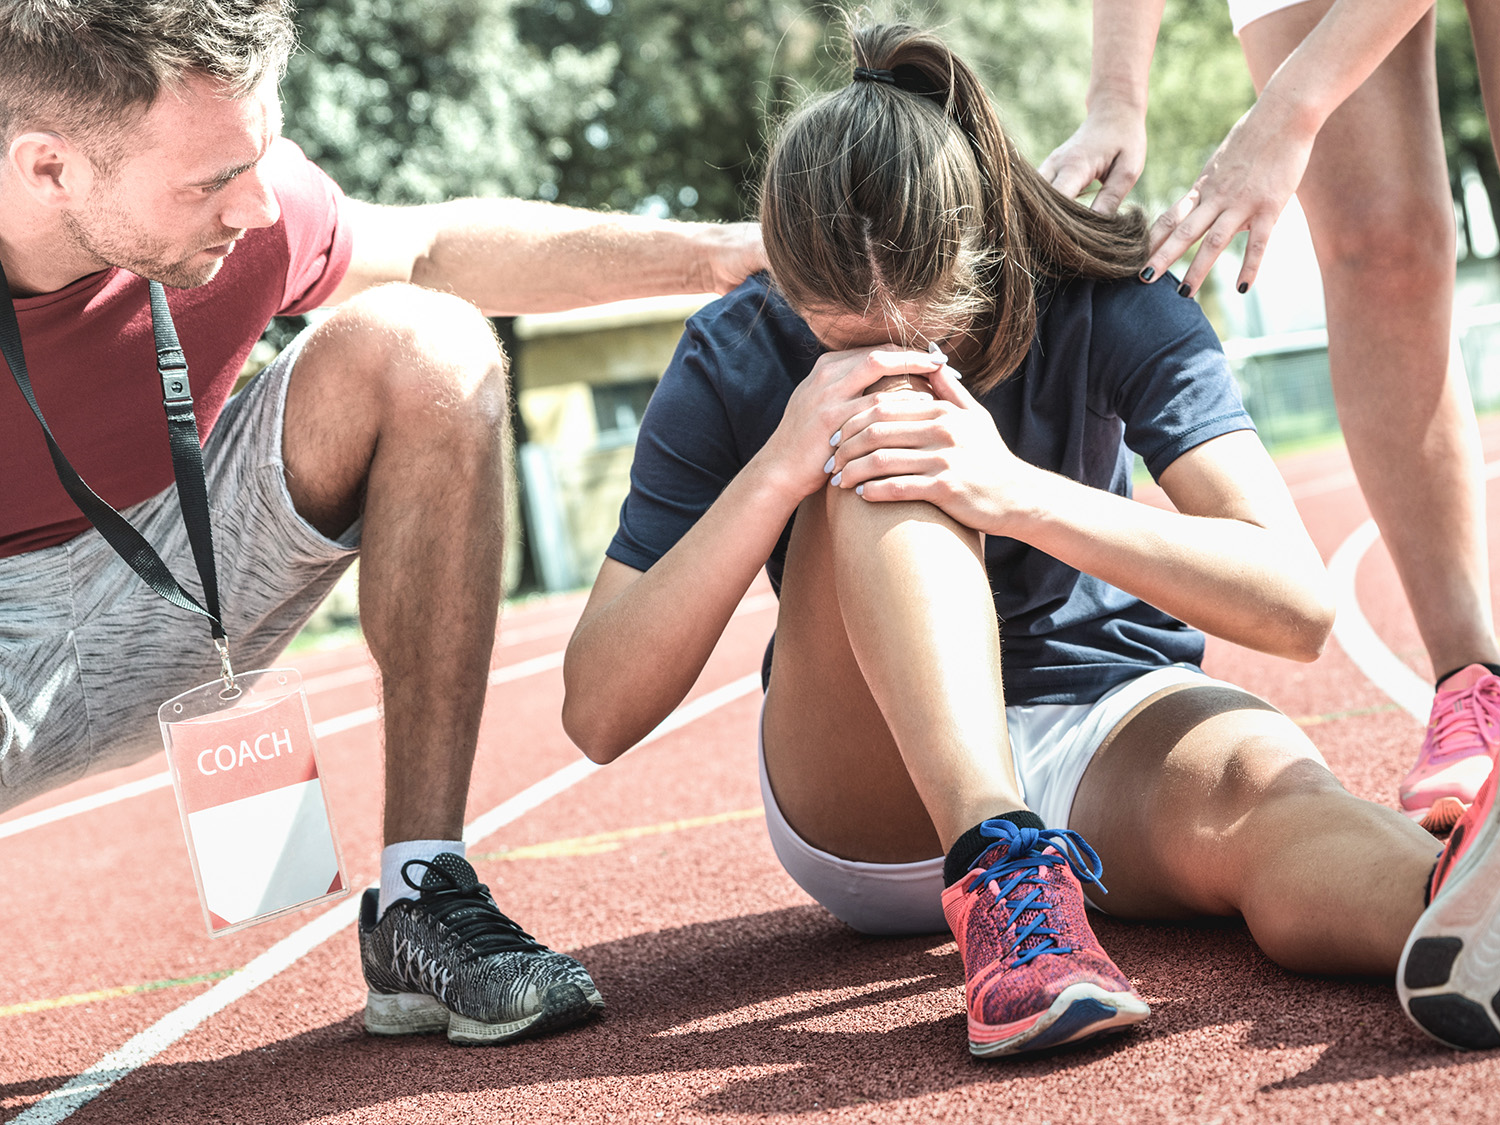 The Injured Athlete: How The Mind Can Suffer During An Injury